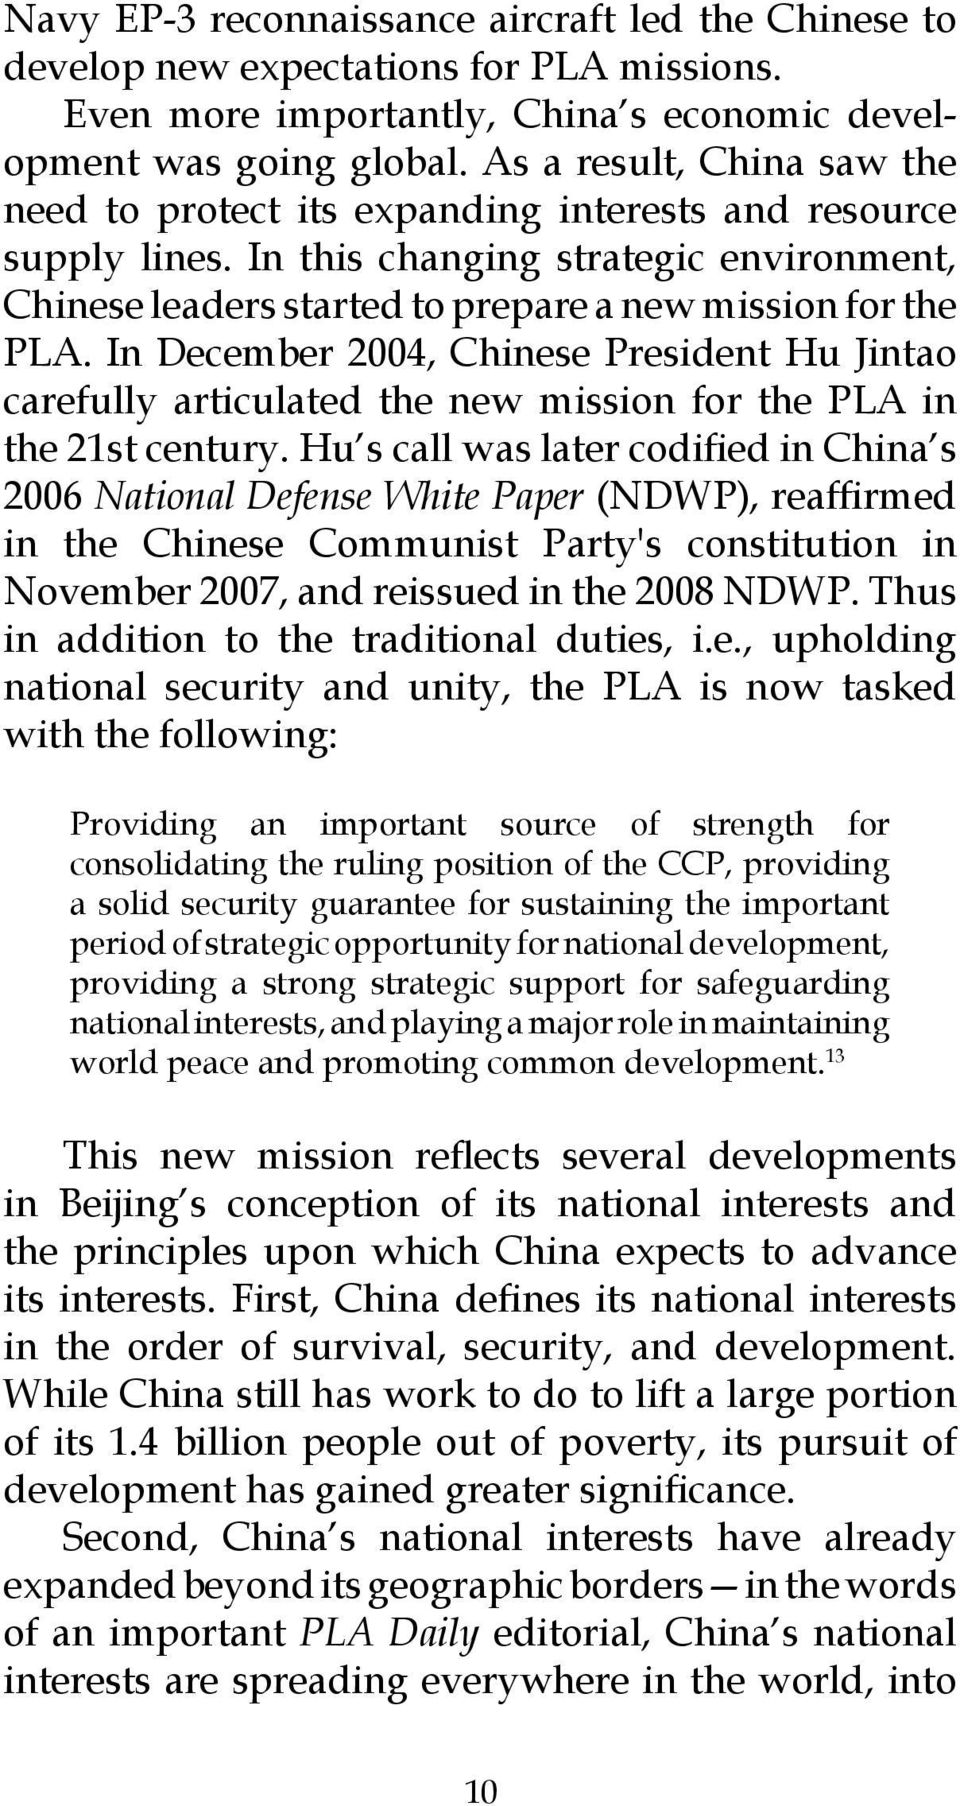 In December 2004, Chinese President Hu Jintao carefully articulated the new mission for the PLA in the 21st century.